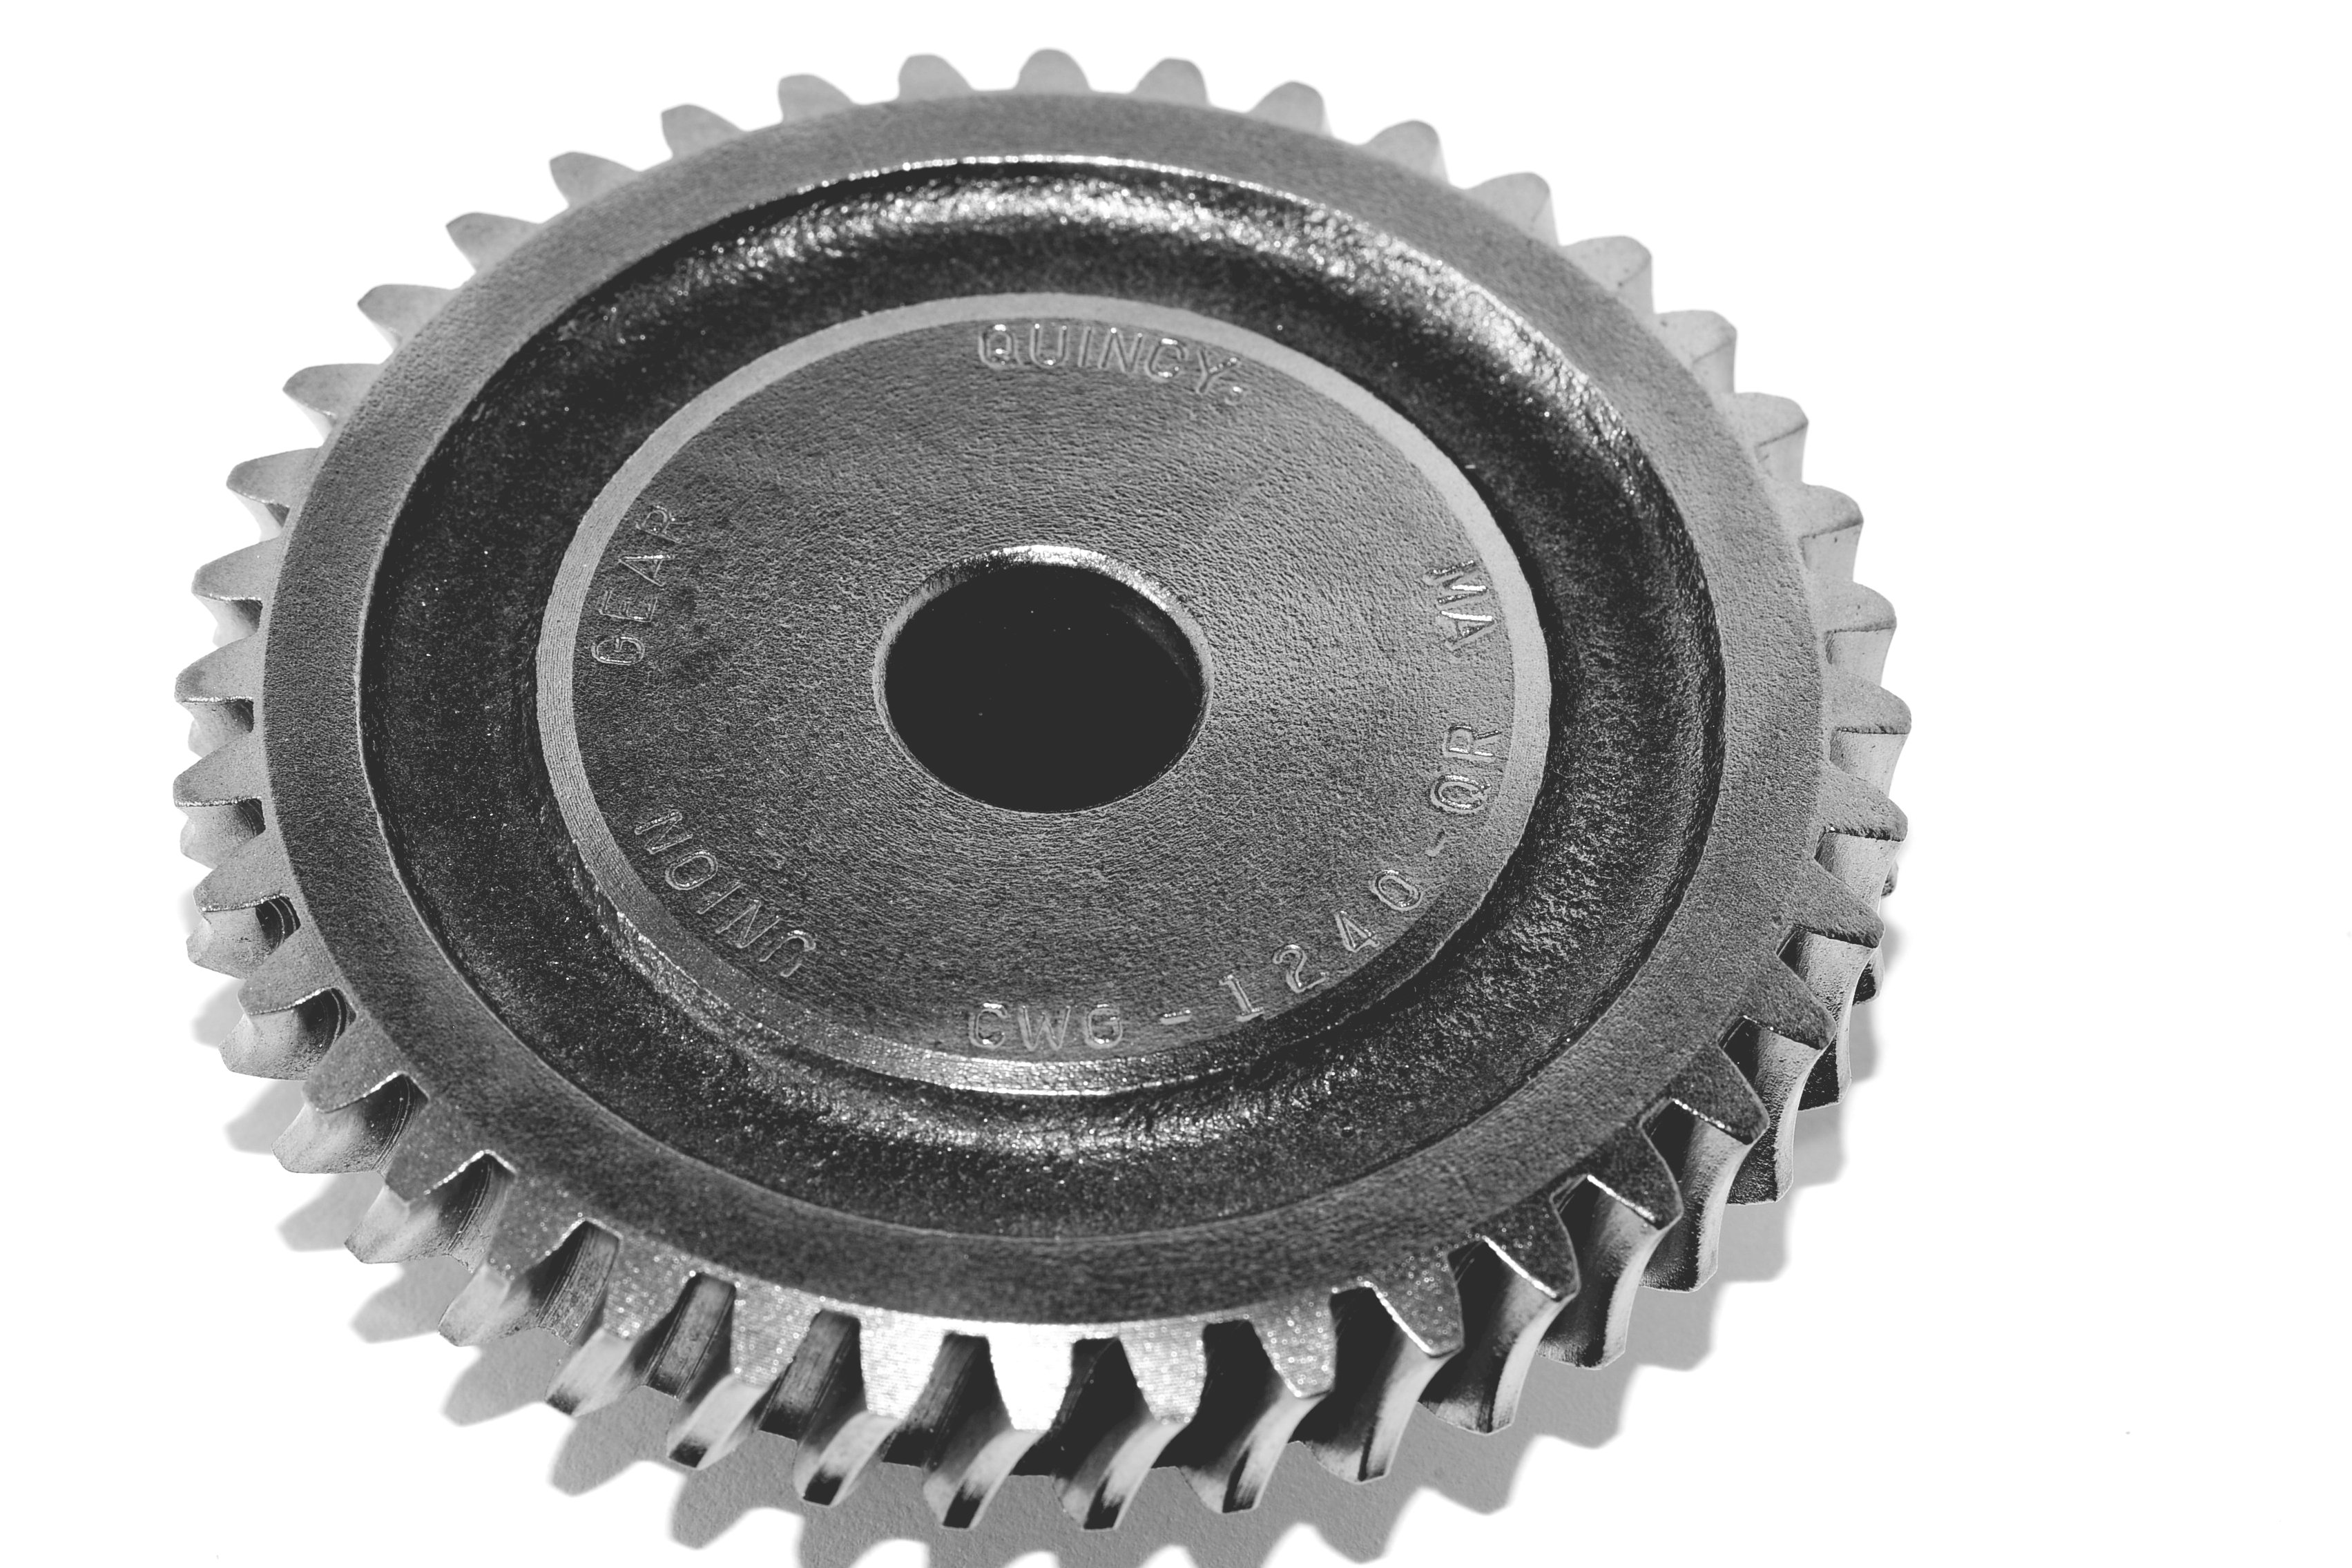 "New Union Gear  BWG-1218-SR Worm Gear  0.5/"" Bore 12 Pitch 18 Teeth"